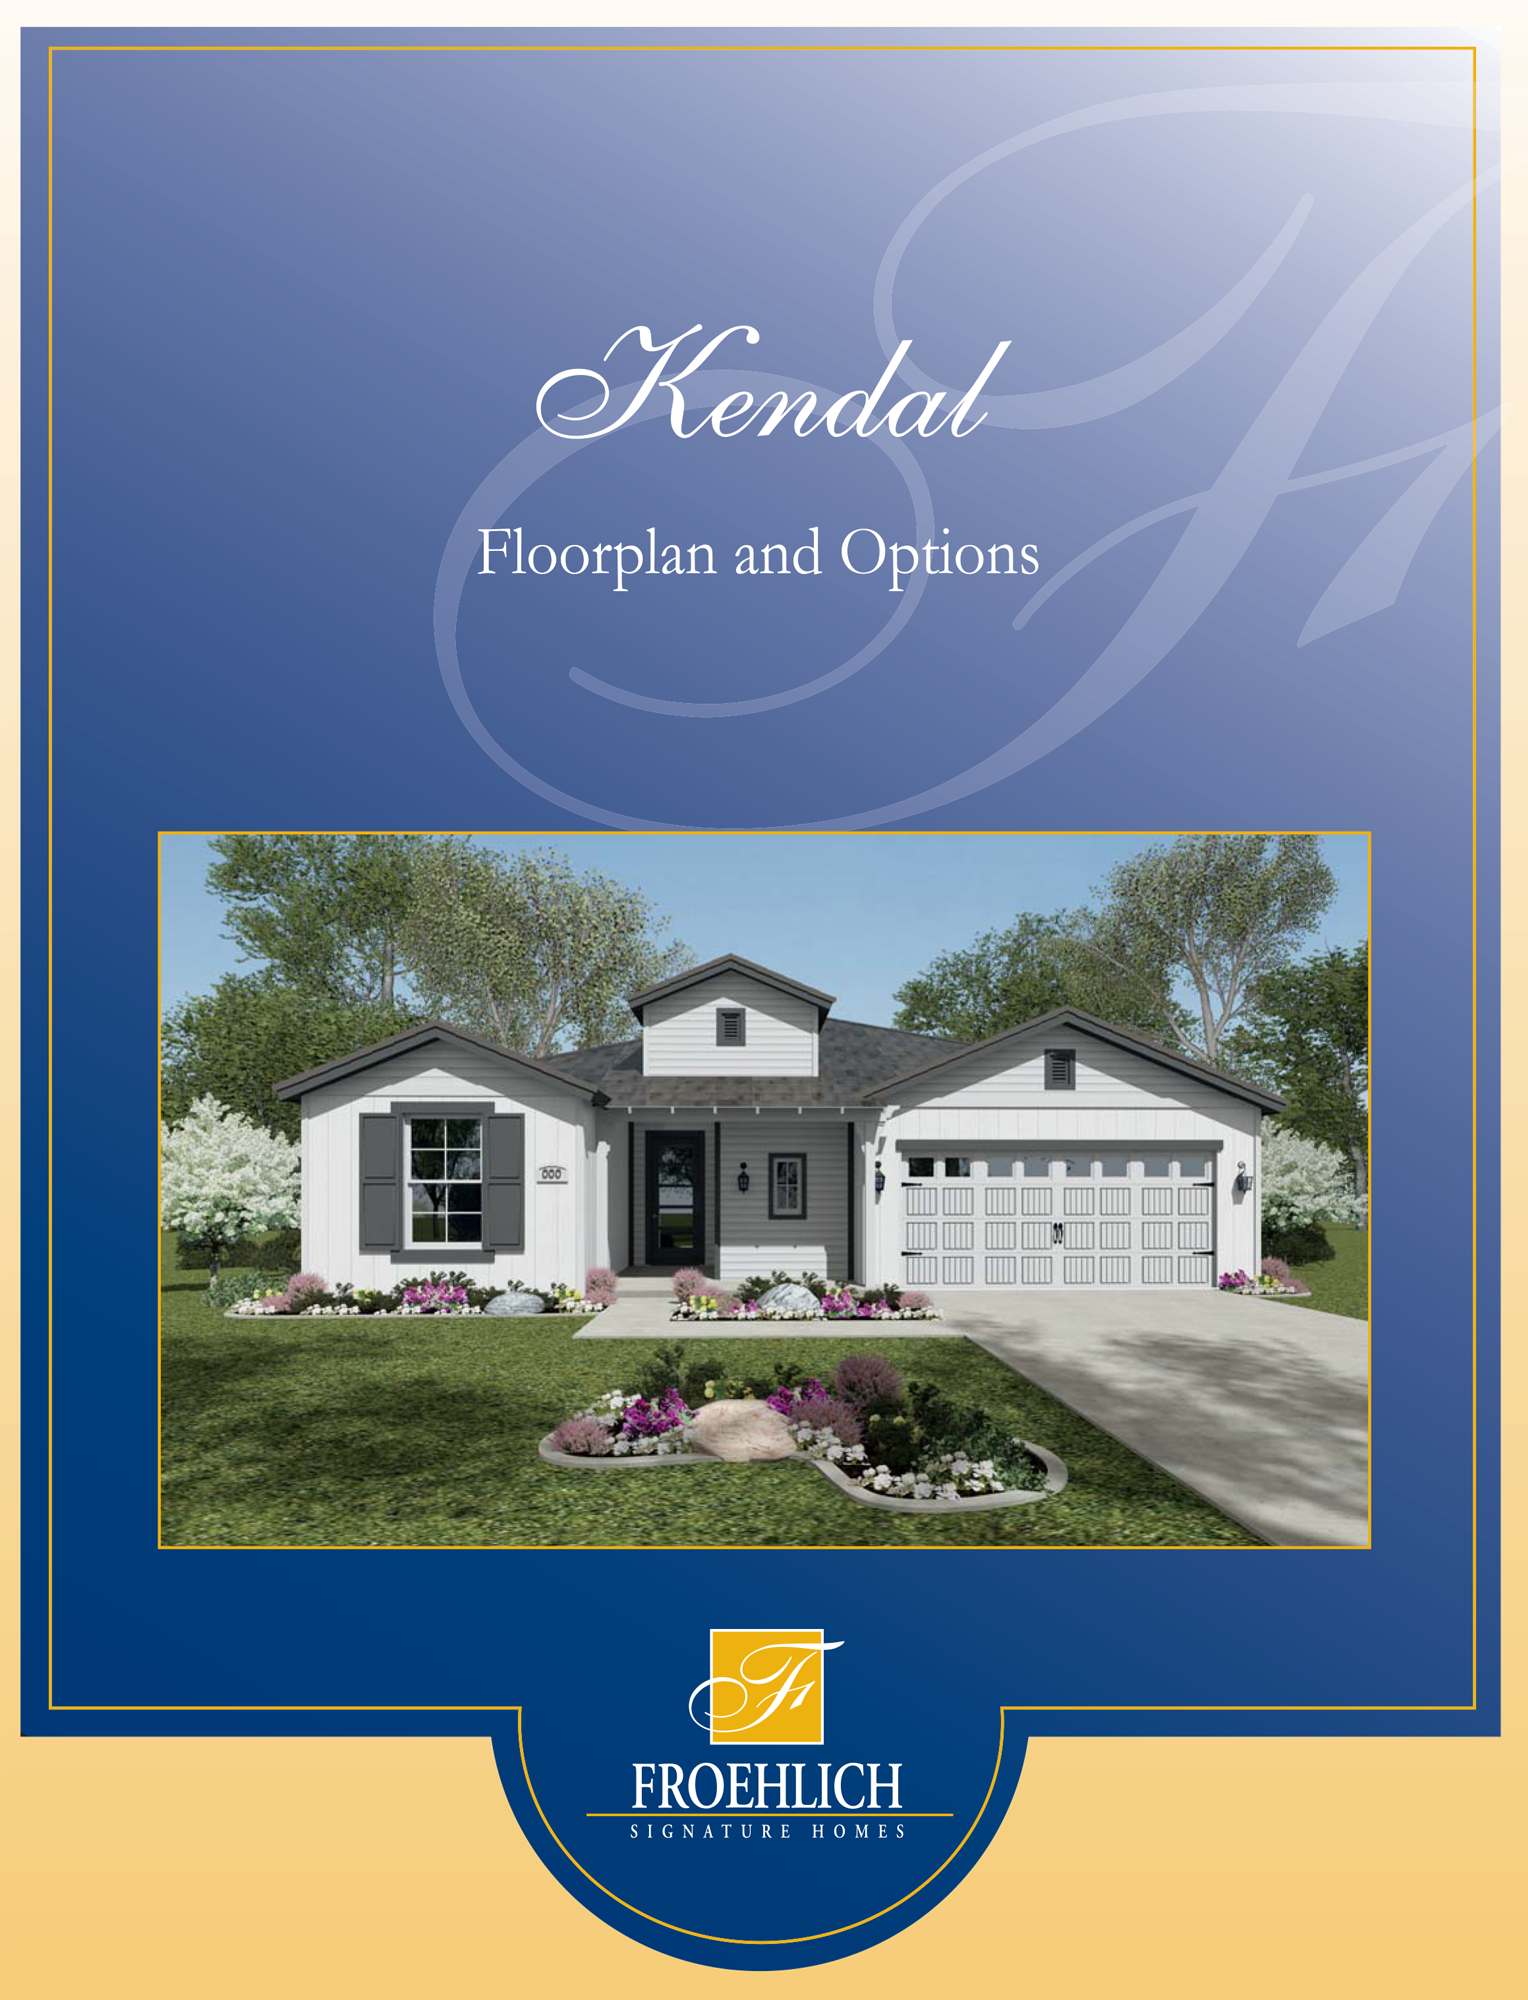 froehlich-Kendal-floor-plan